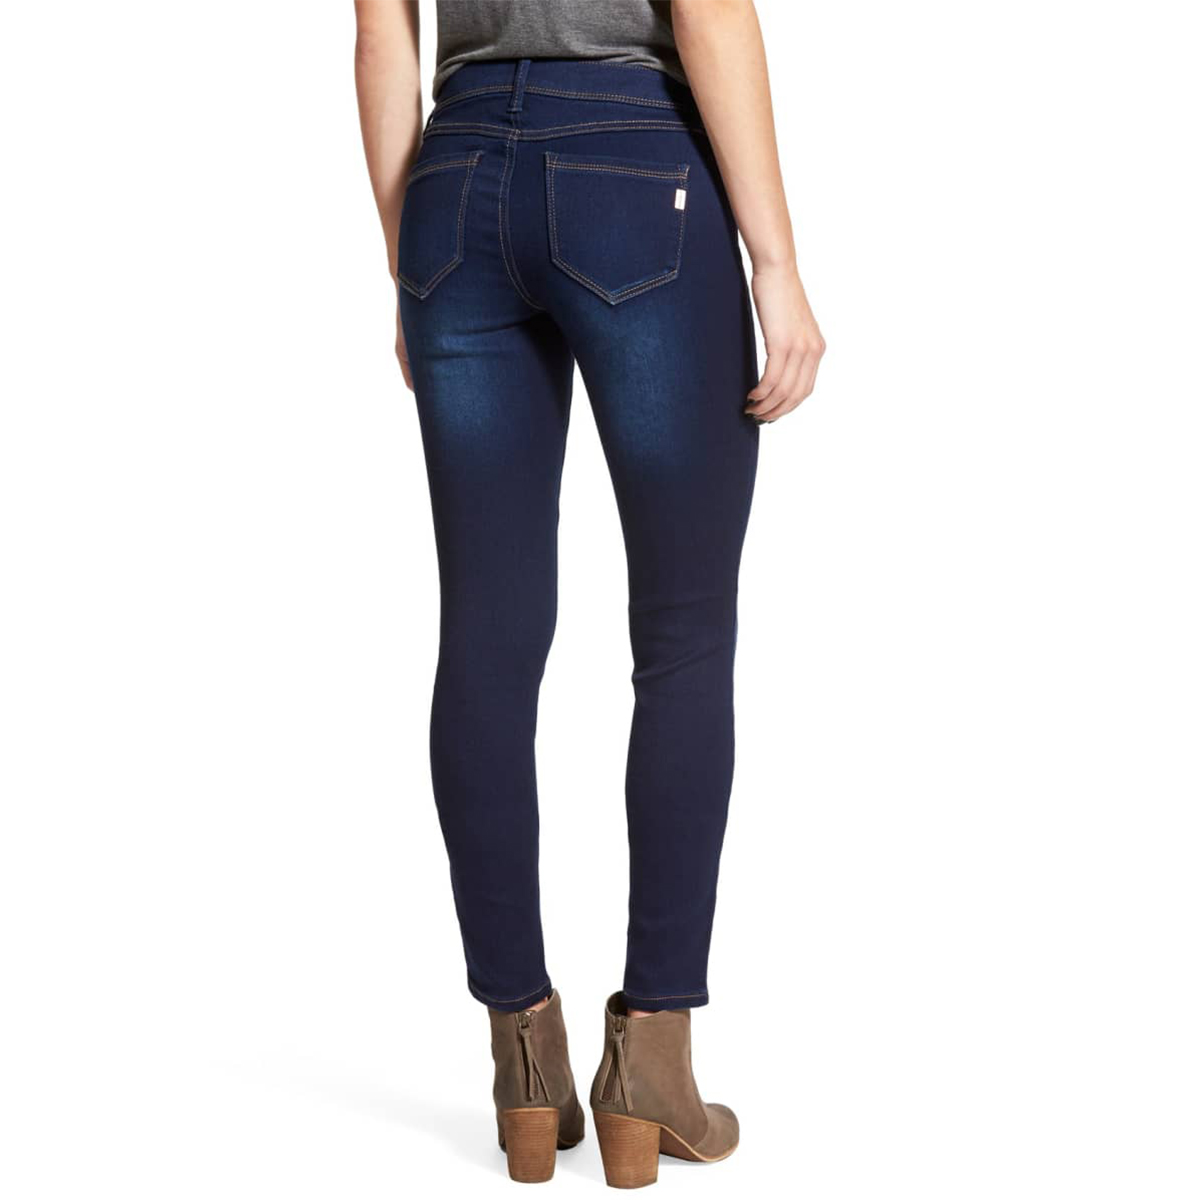 jeans-for-flat-butt-1822-denim